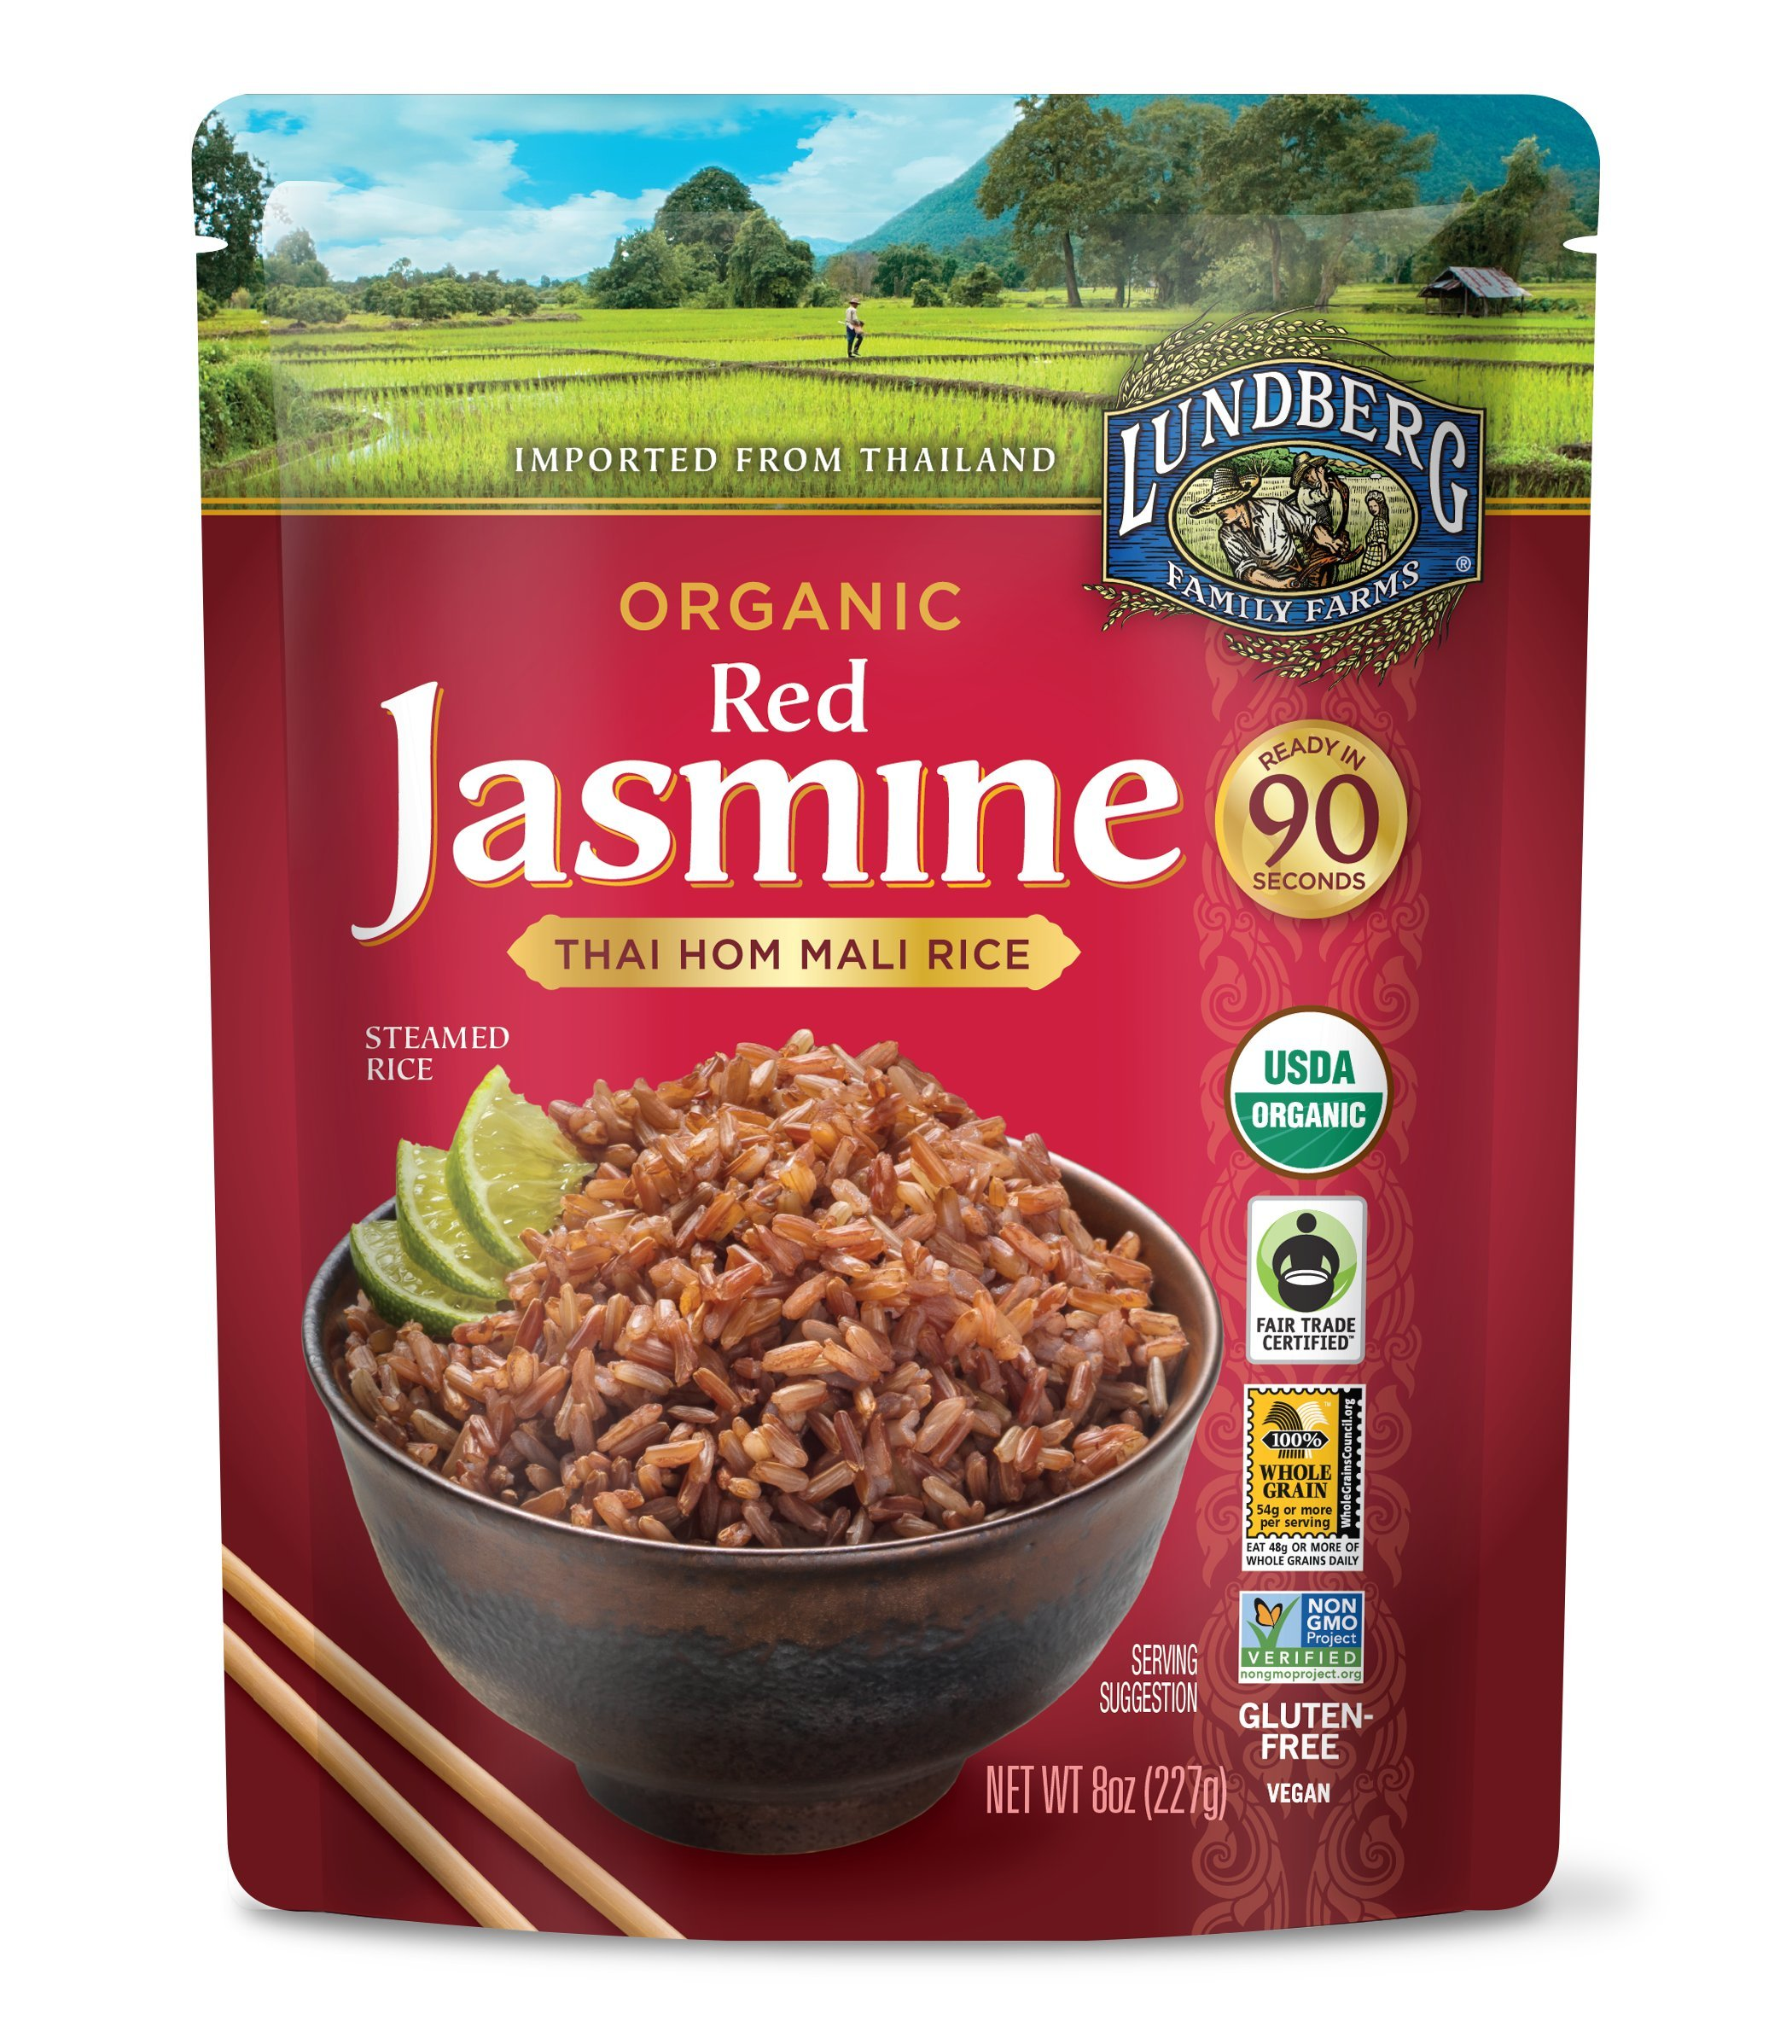 Lundberg Family Farms Organic Red Jasmine Rice, Thai Hom Mali, 8 Ounce